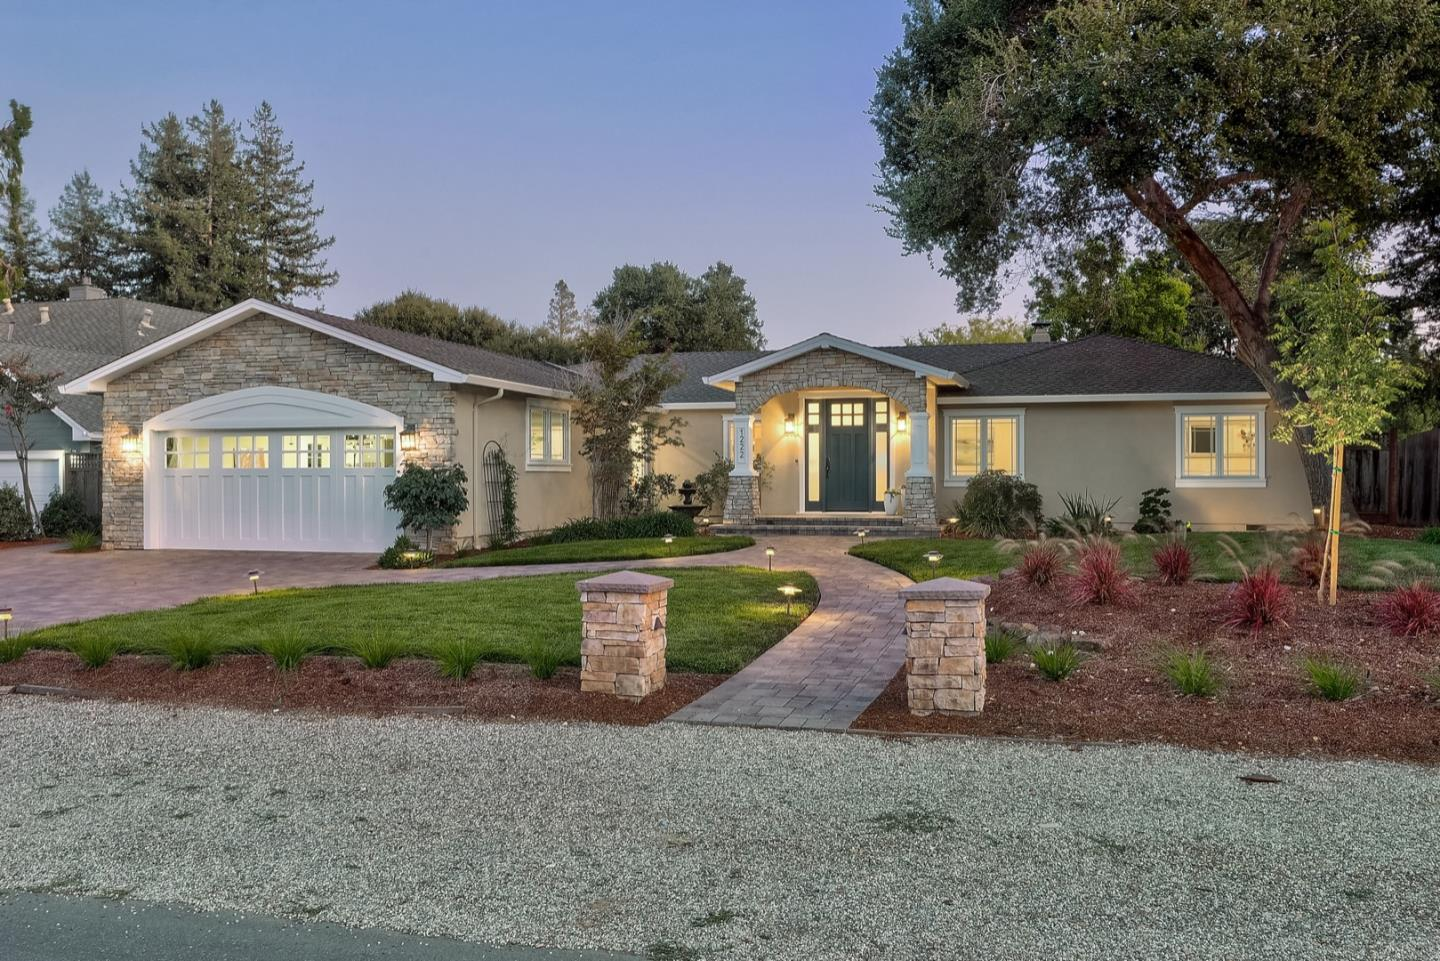 Detail Gallery Image 1 of 18 For 1222 Richardson Ave, Los Altos, CA 94024 - 5 Beds | 2/1 Baths